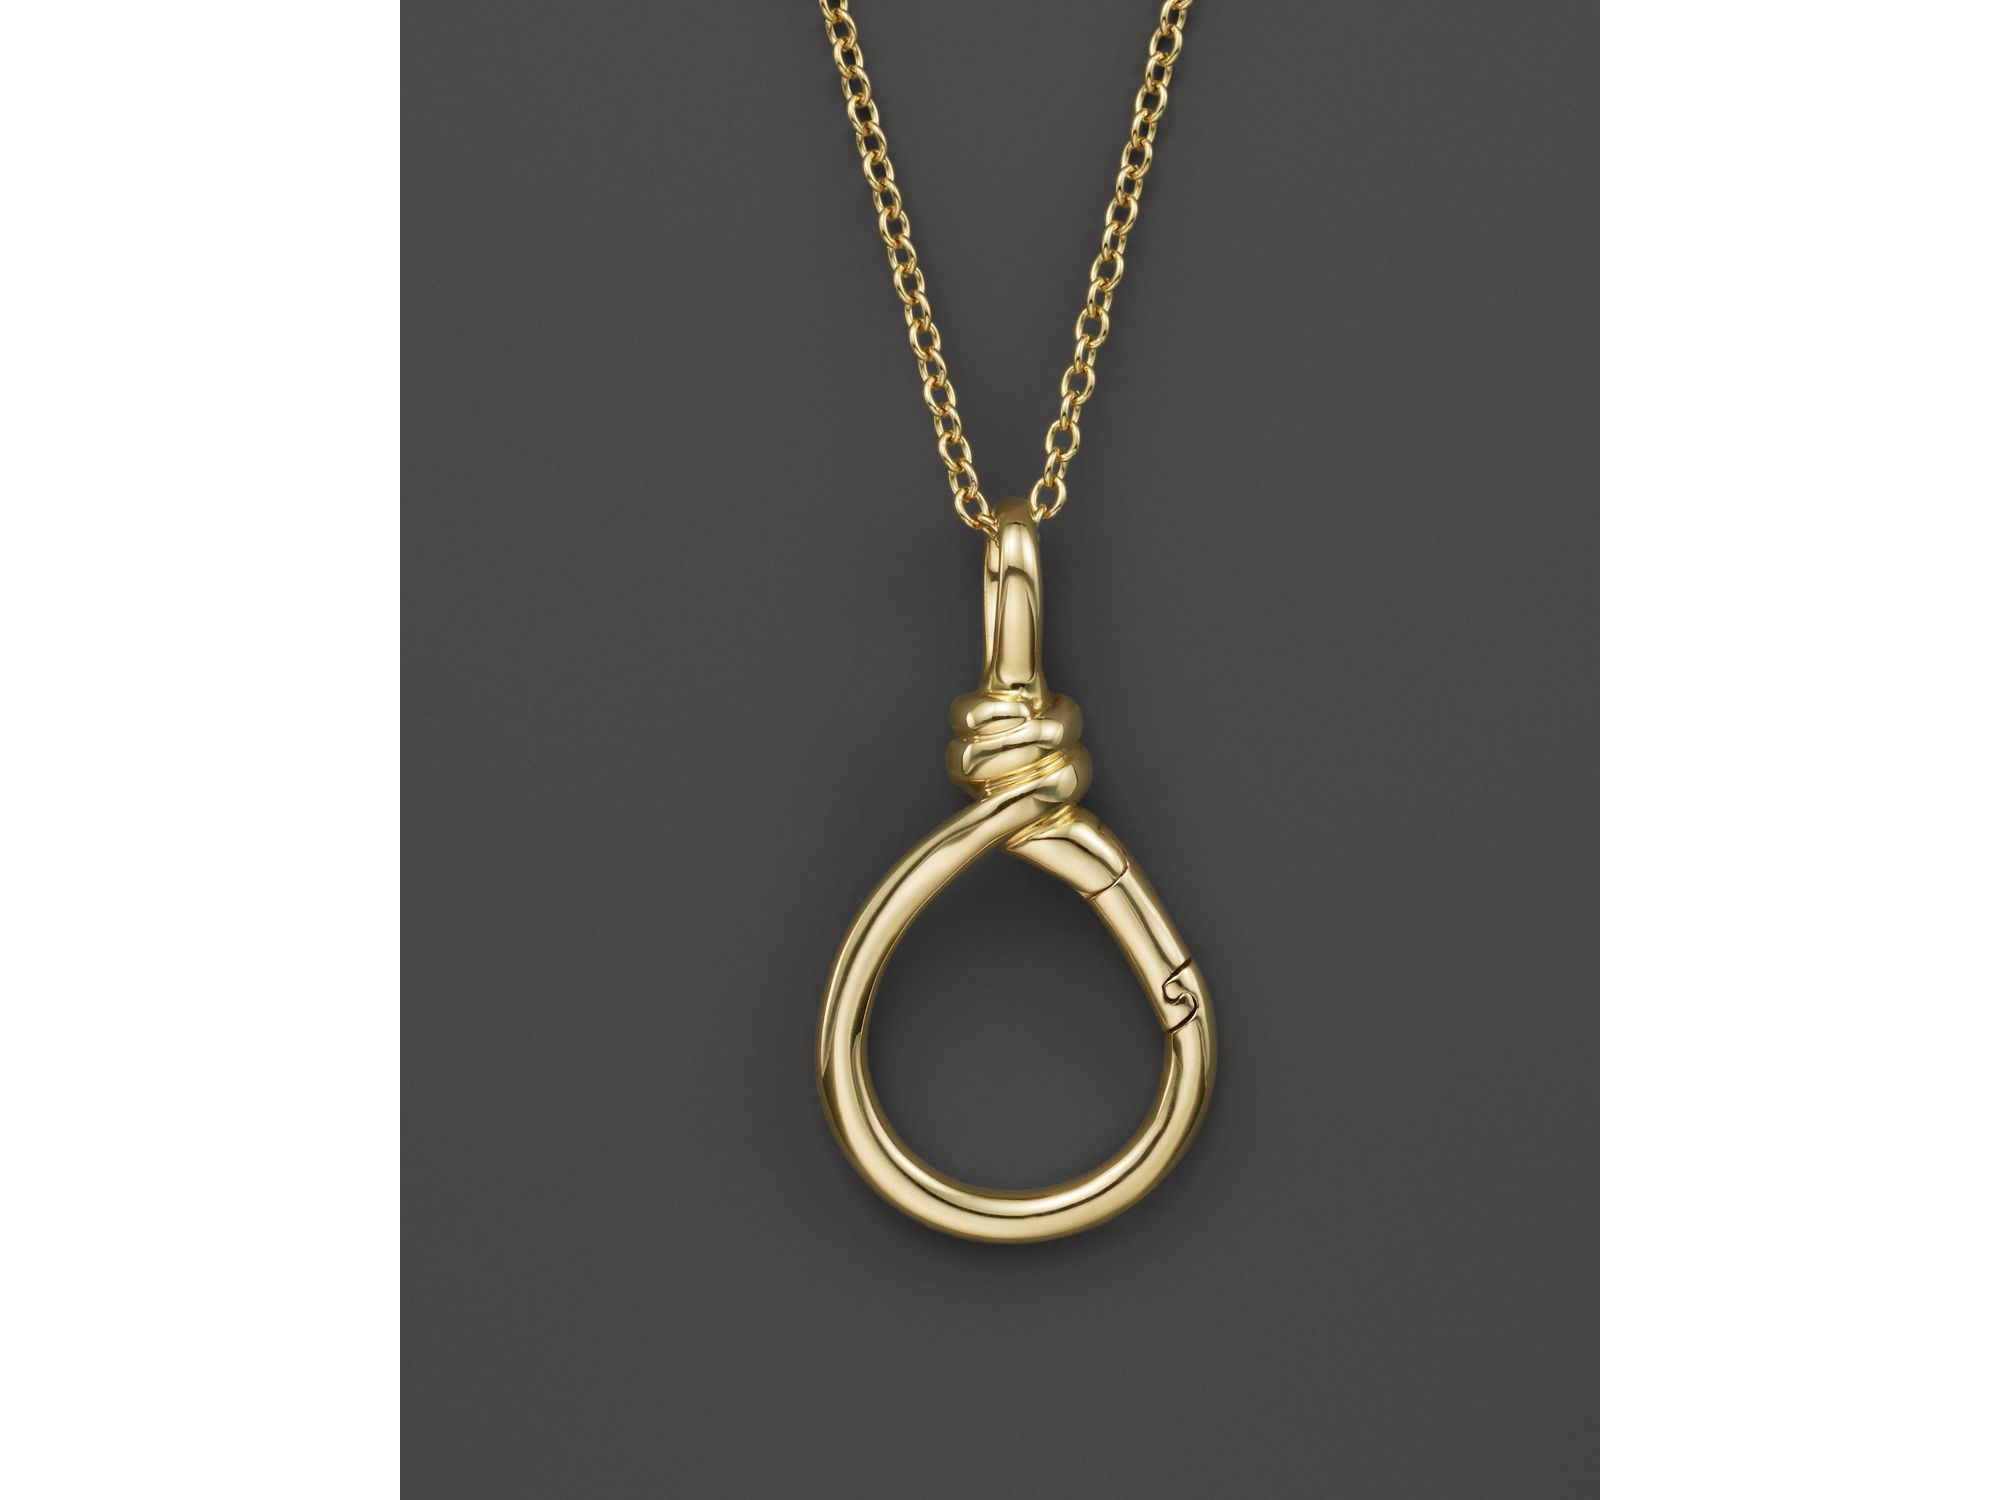 Lyst - Ippolita 18k Yellow Gold Twisted Wire Charm Holder in Metallic